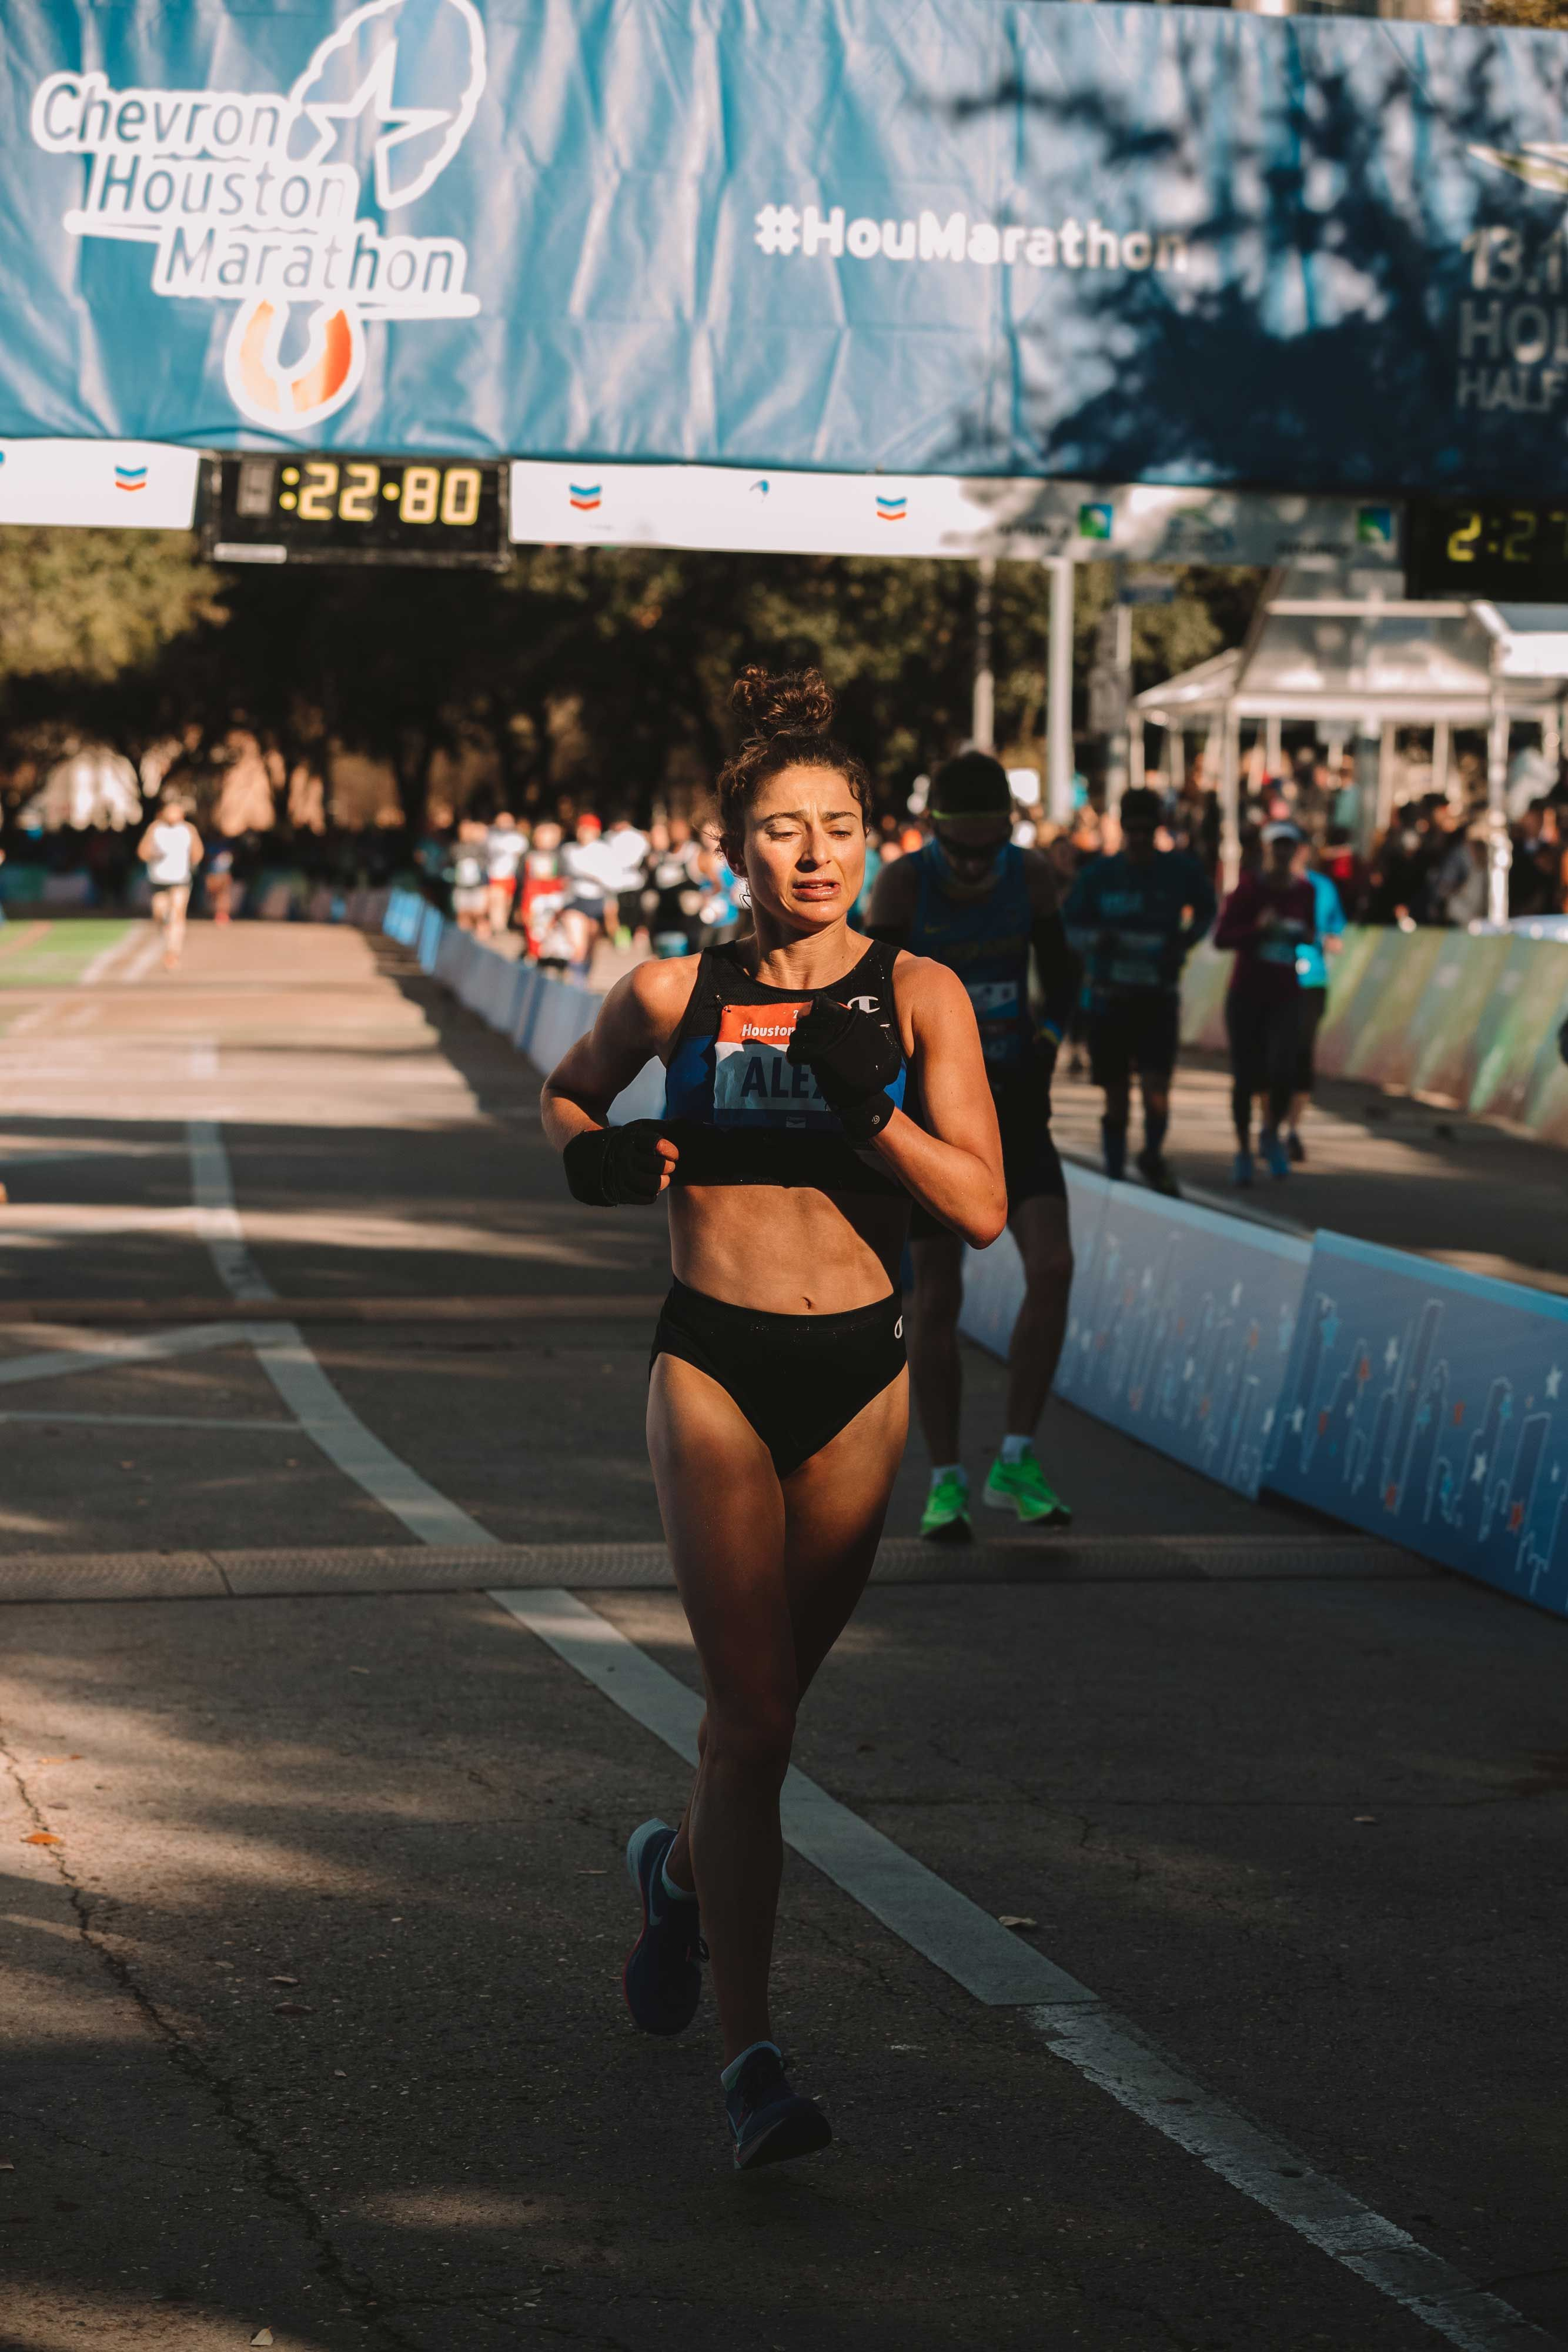 Alexi Pappas Shares How She Fueled for a Huge PR in Houston